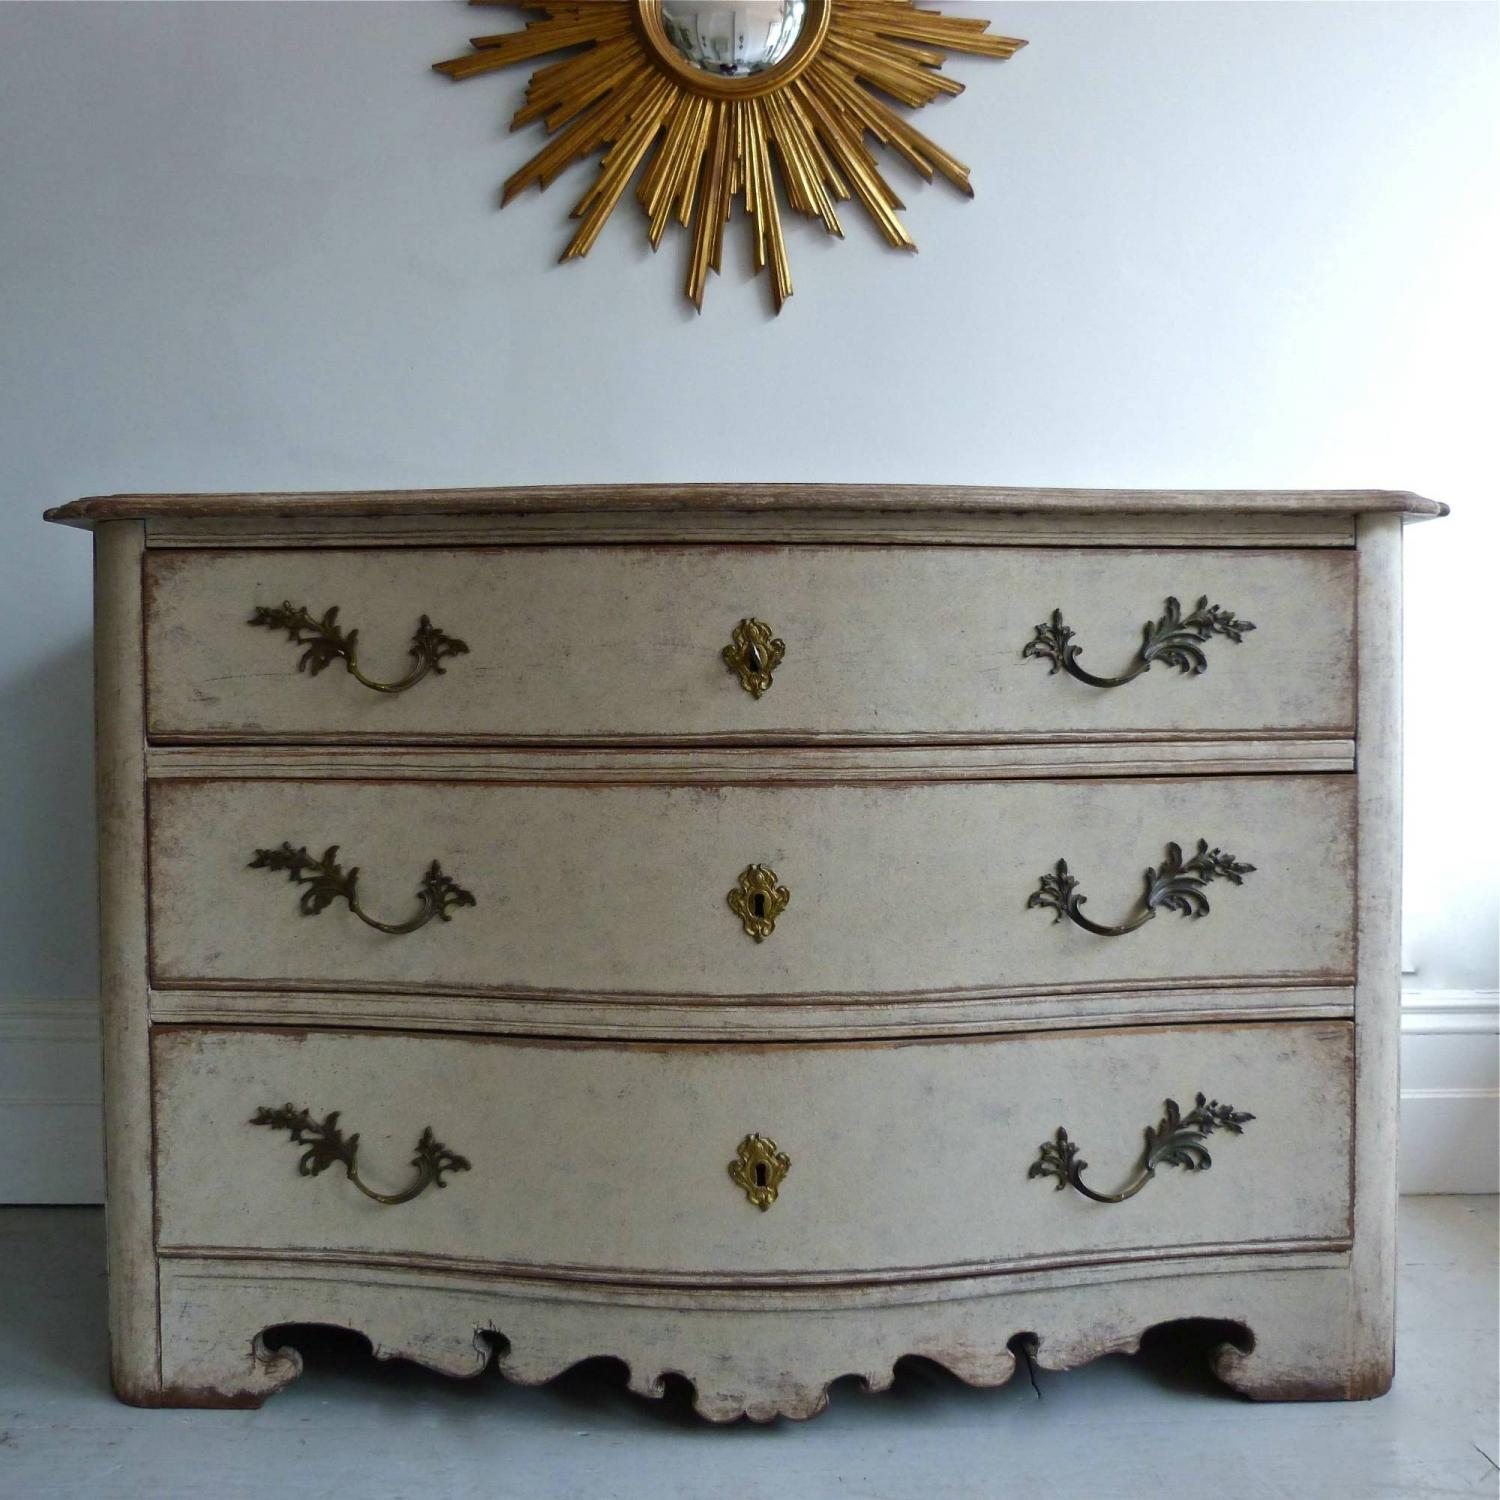 RARE 18TH CENTURY SWEDISH ROCOCO PERIOD CHEST